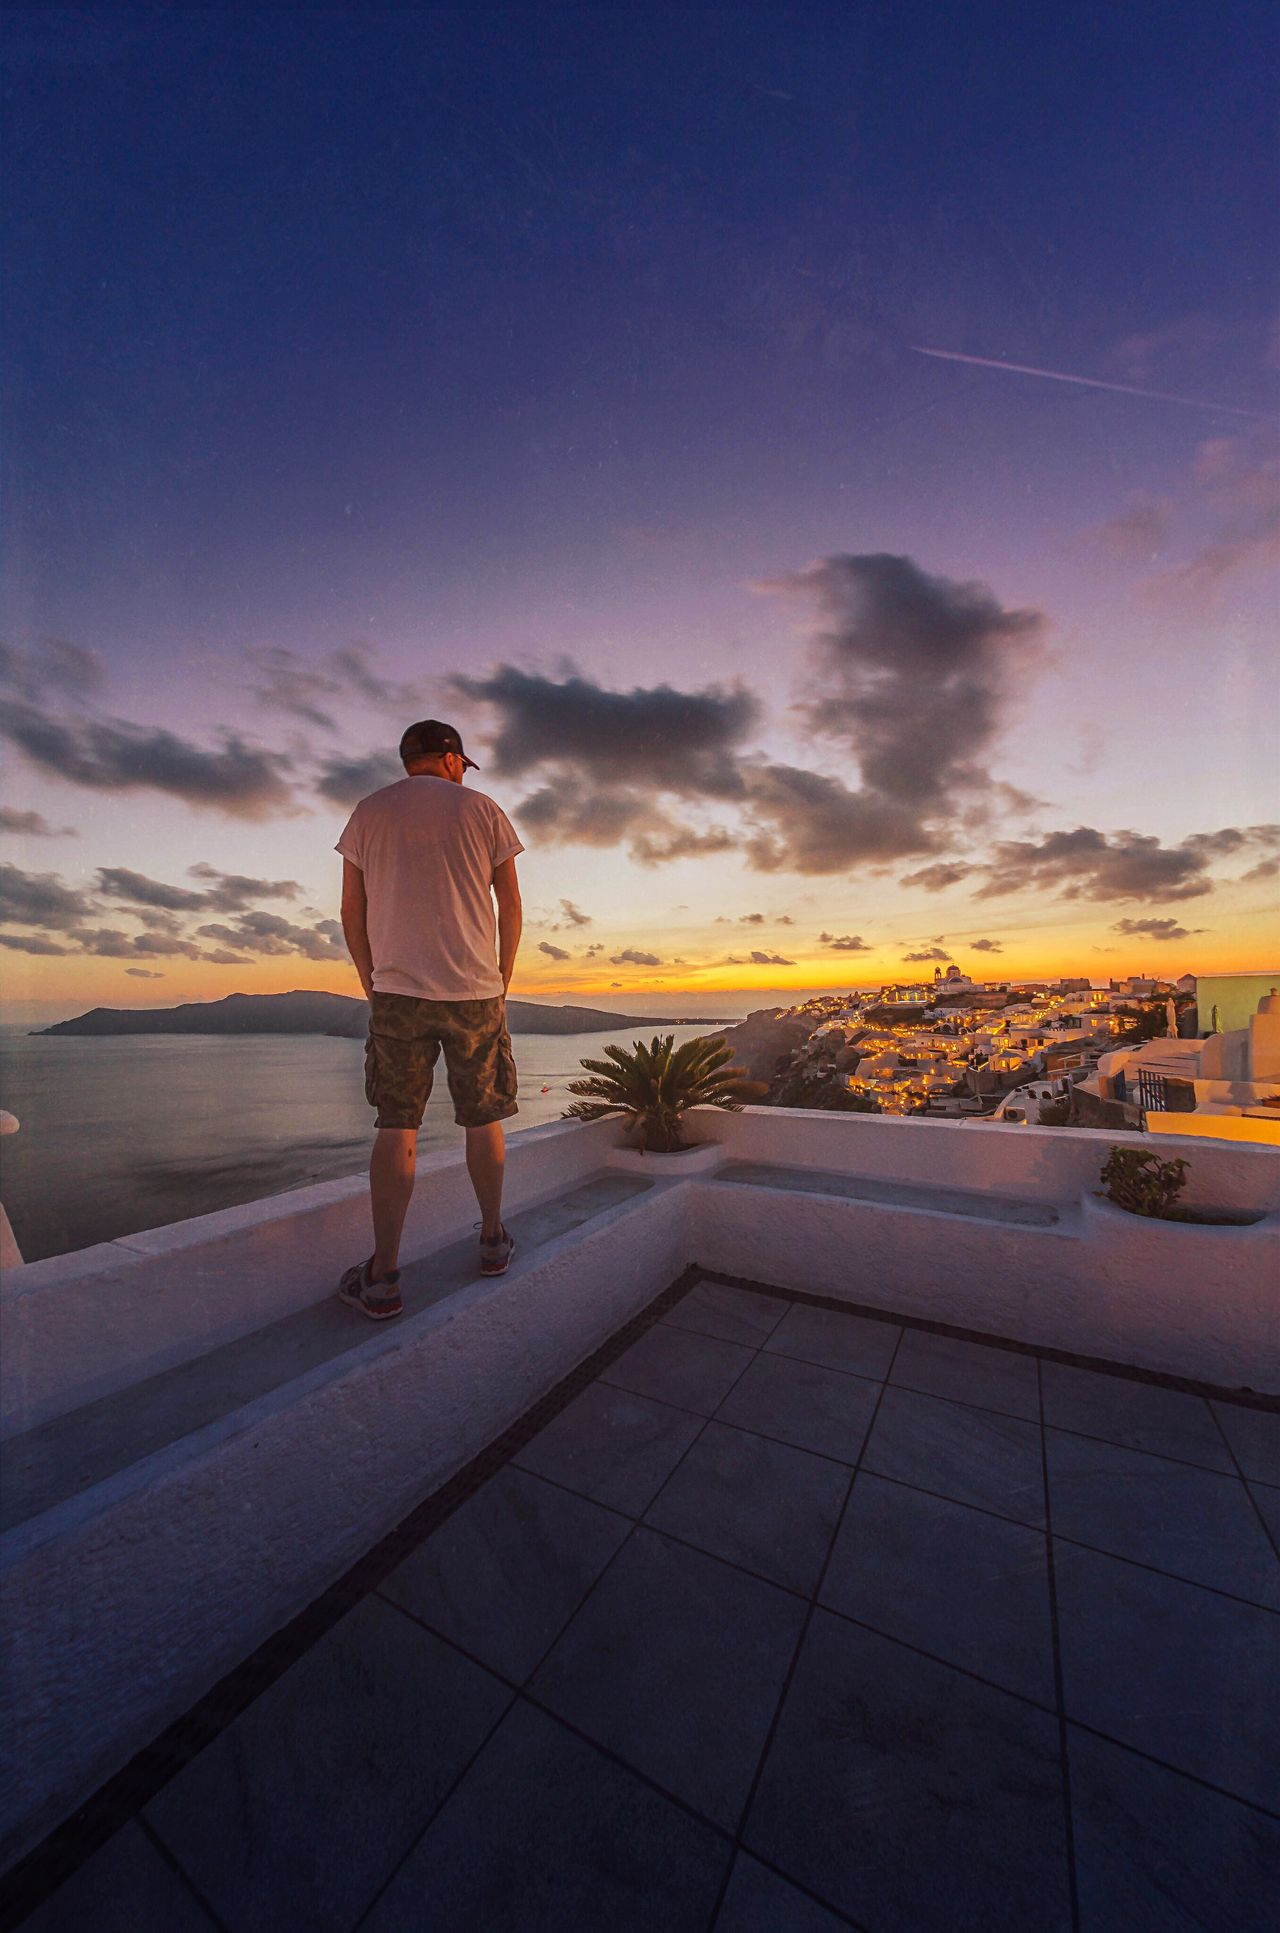 Warm Dusk | Oia, Santorini Greece Sunset Full Length Sky Nature One Man Only Outdoors One Person Scenics Men Beauty In Nature Adult Only Men People Adults Only Dusk Santorini Greece Seascape Sea And Sky Taking In The View. Summer Holiday Summer Nights Oia Sunset_collection